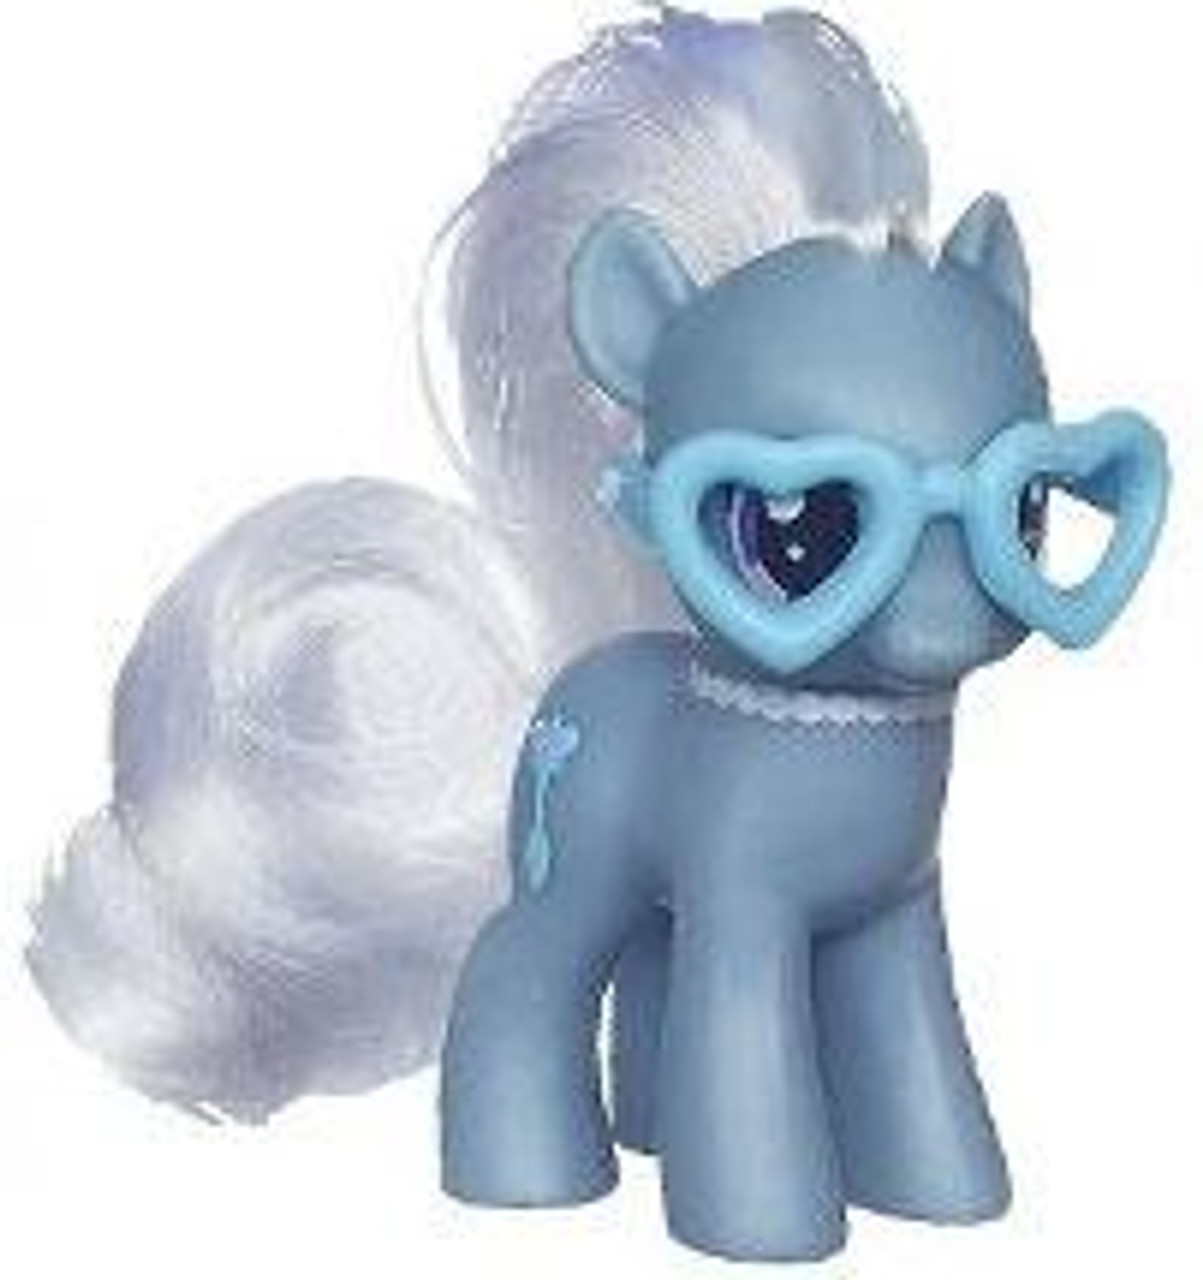 My Little Pony Silver Spoon Collectible Figure [Loose]